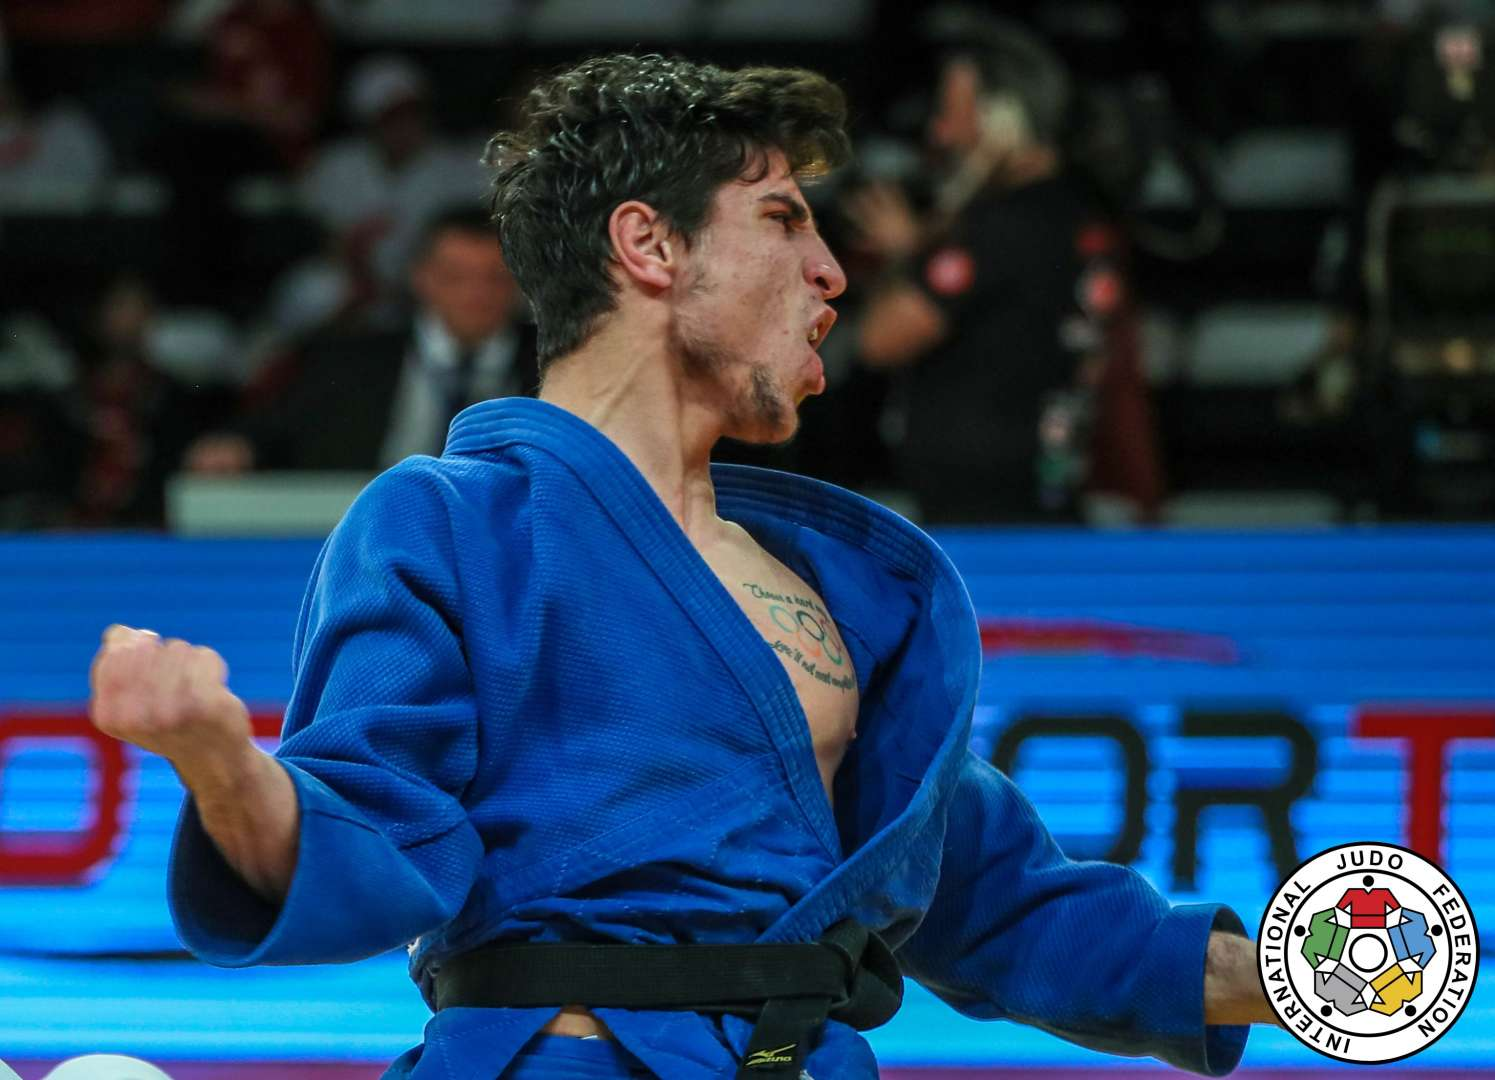 20180406_antalya_gp_ijf_final_niniashvili_bagrati_2